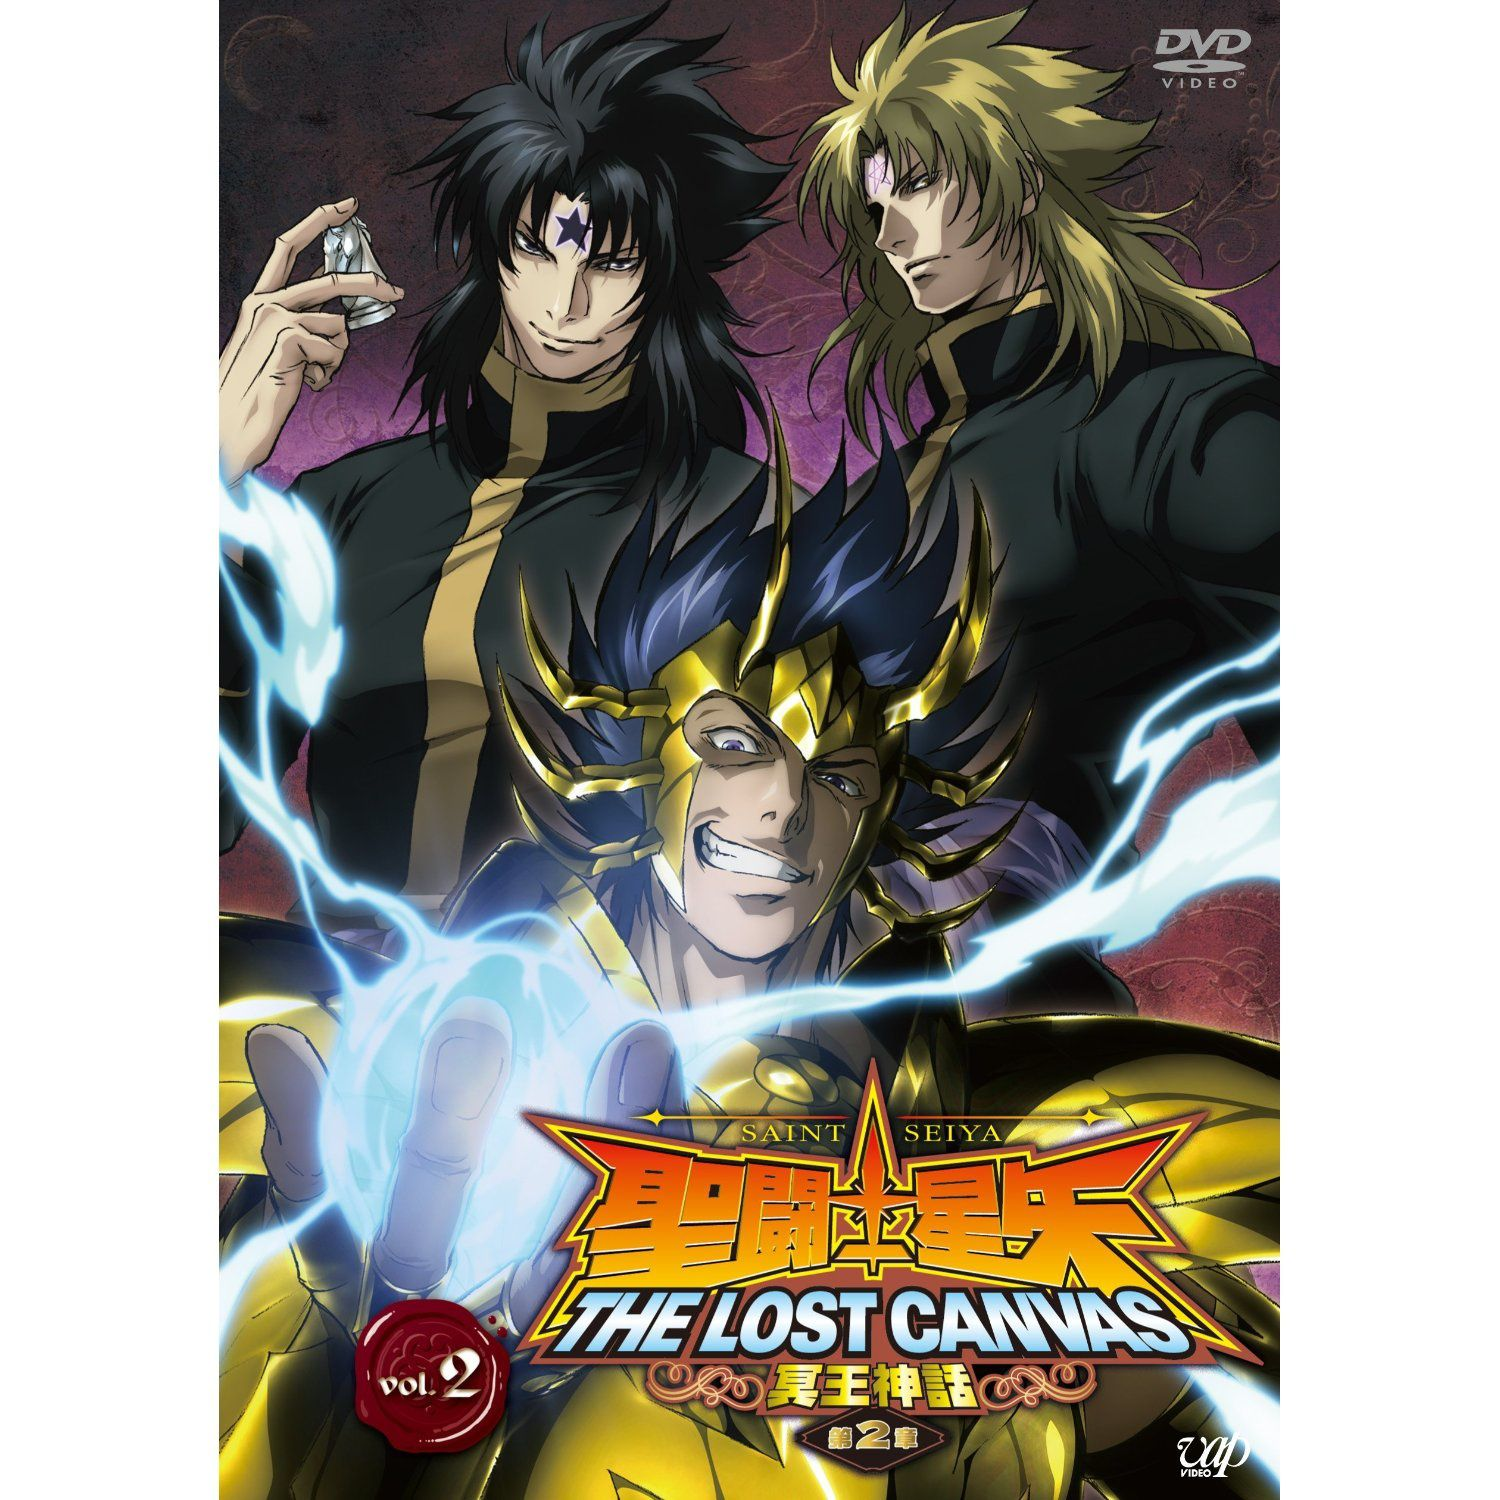 saint seiya the lost canvas episode 2 vf